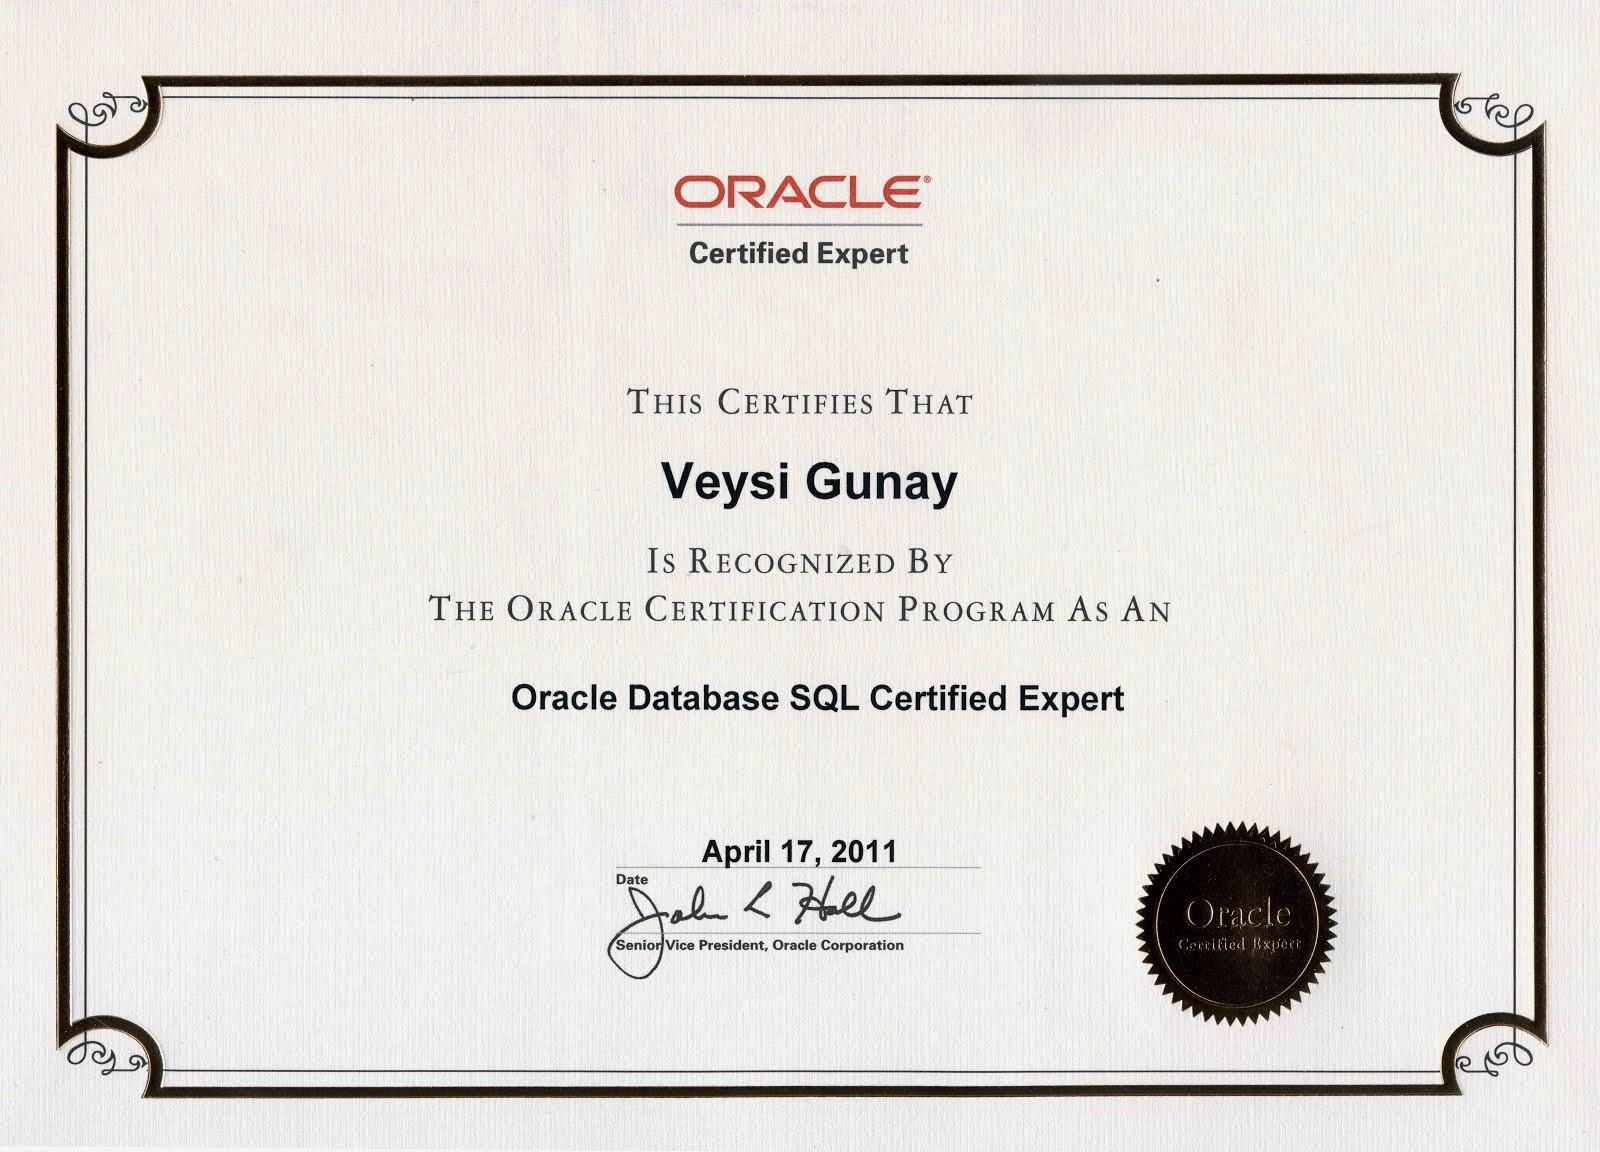 veysi gunay s oracle blog oracle enterprise manager oem g my sql expert